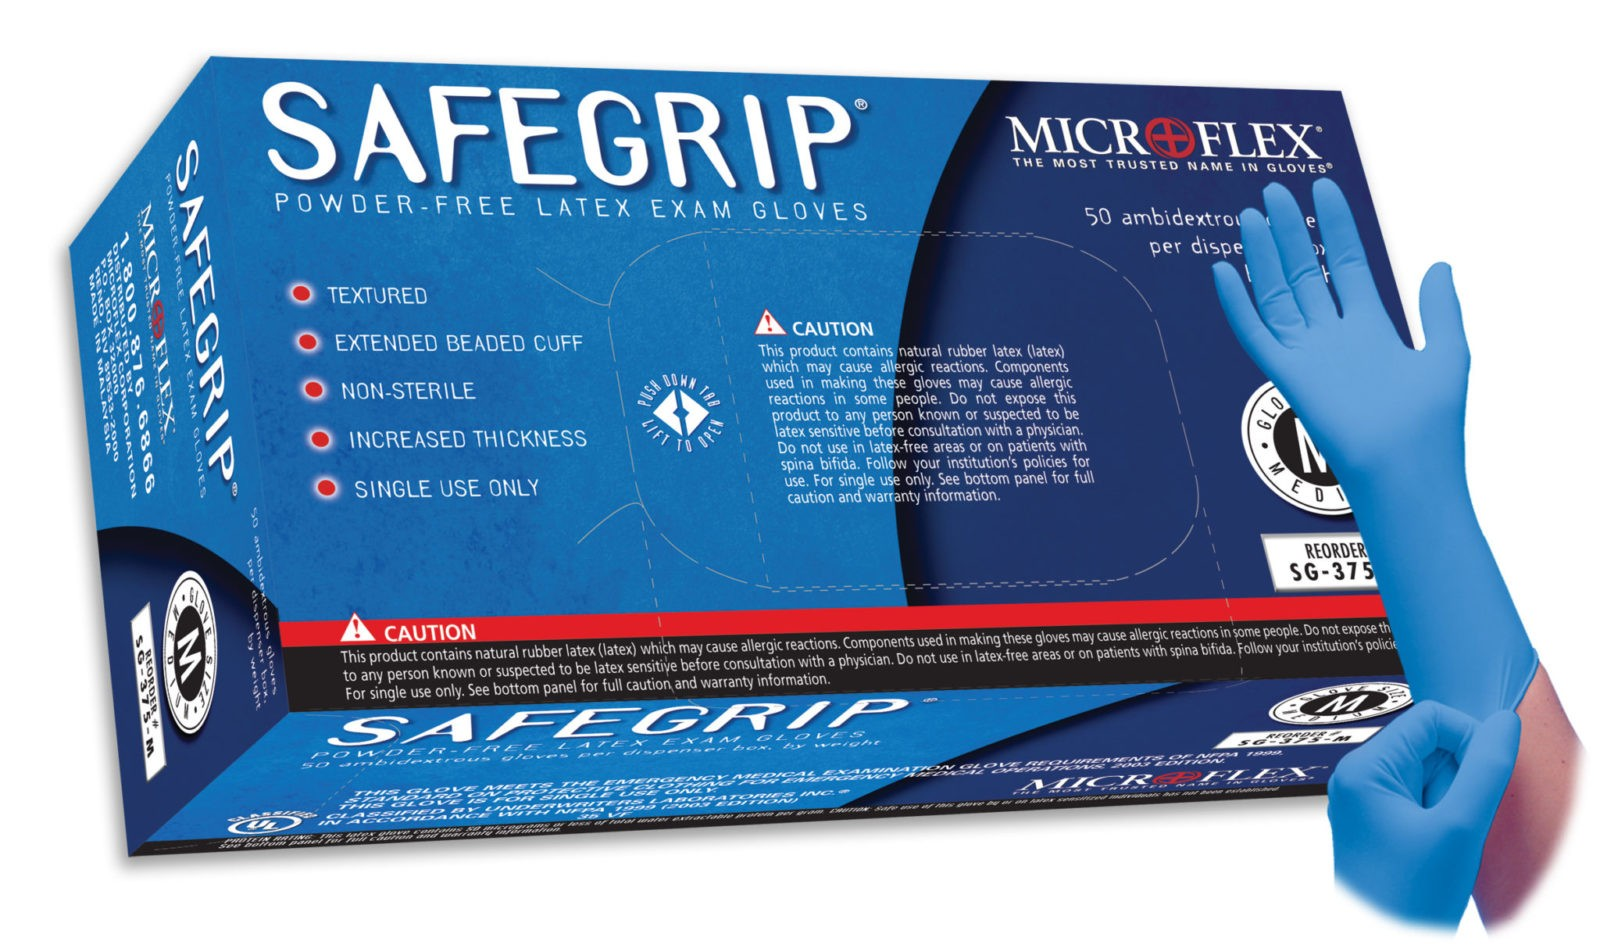 Microflex SafeGrip SG-375 powder free latex exam glove